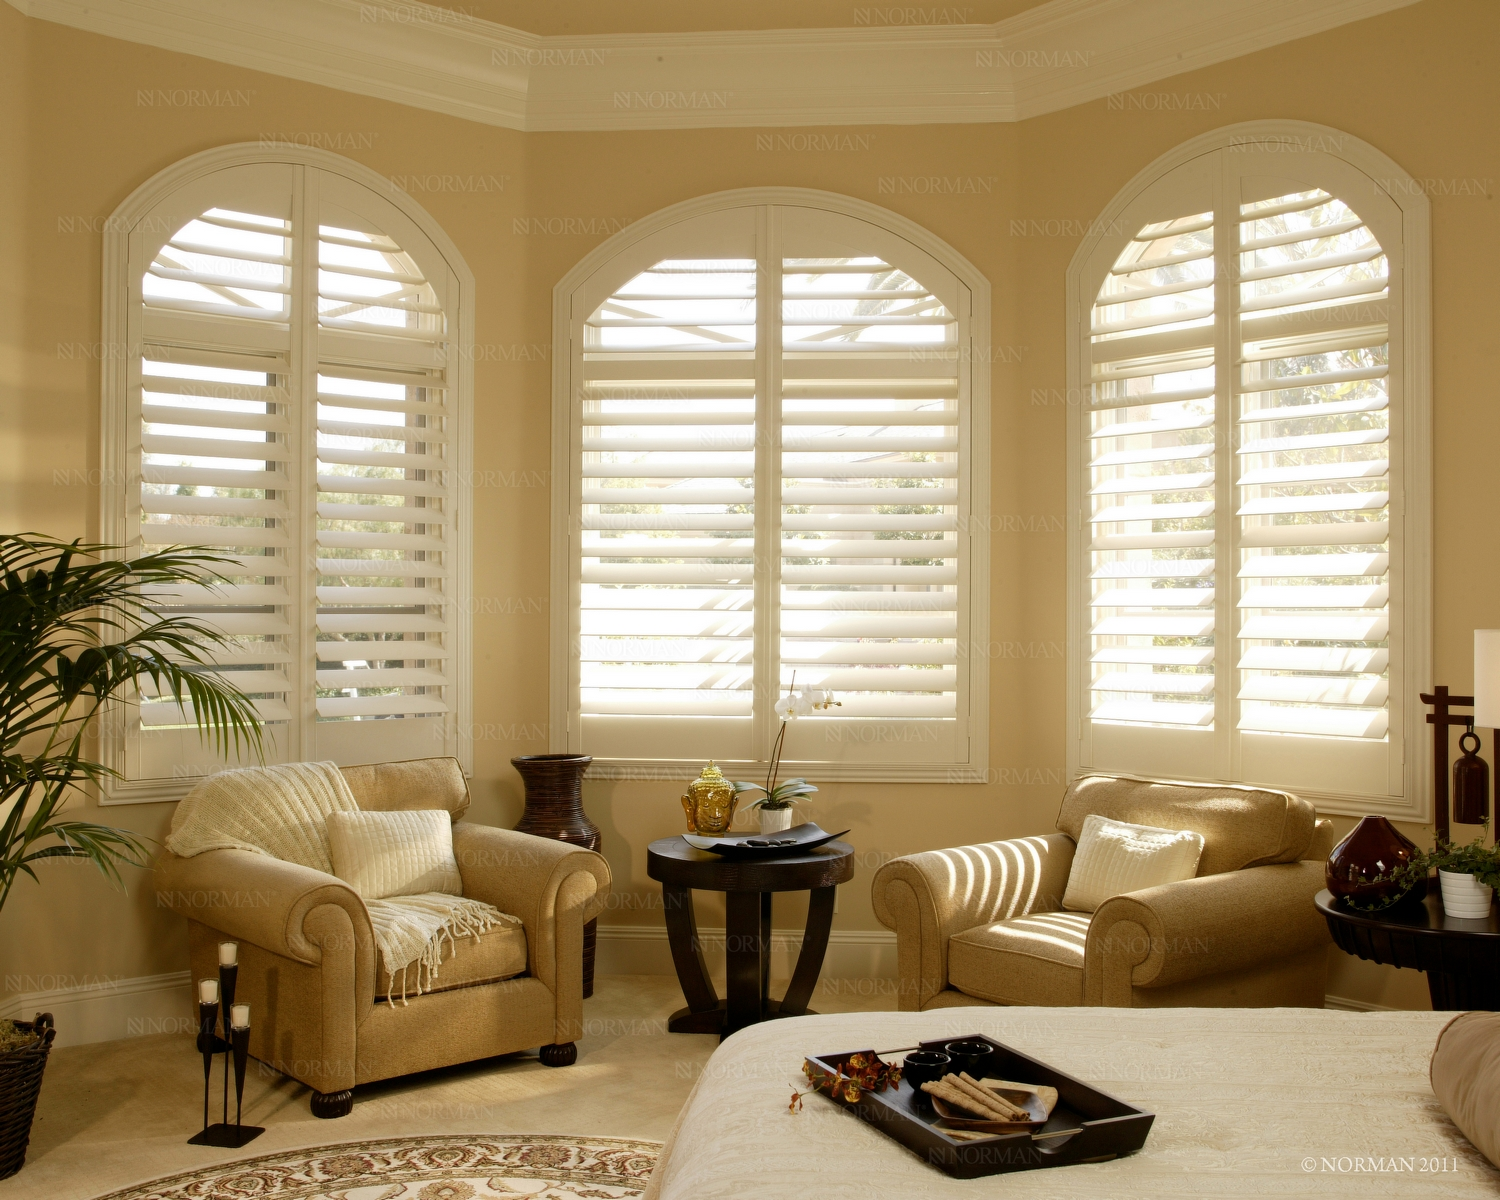 Bedroom Plantatioin Shutters